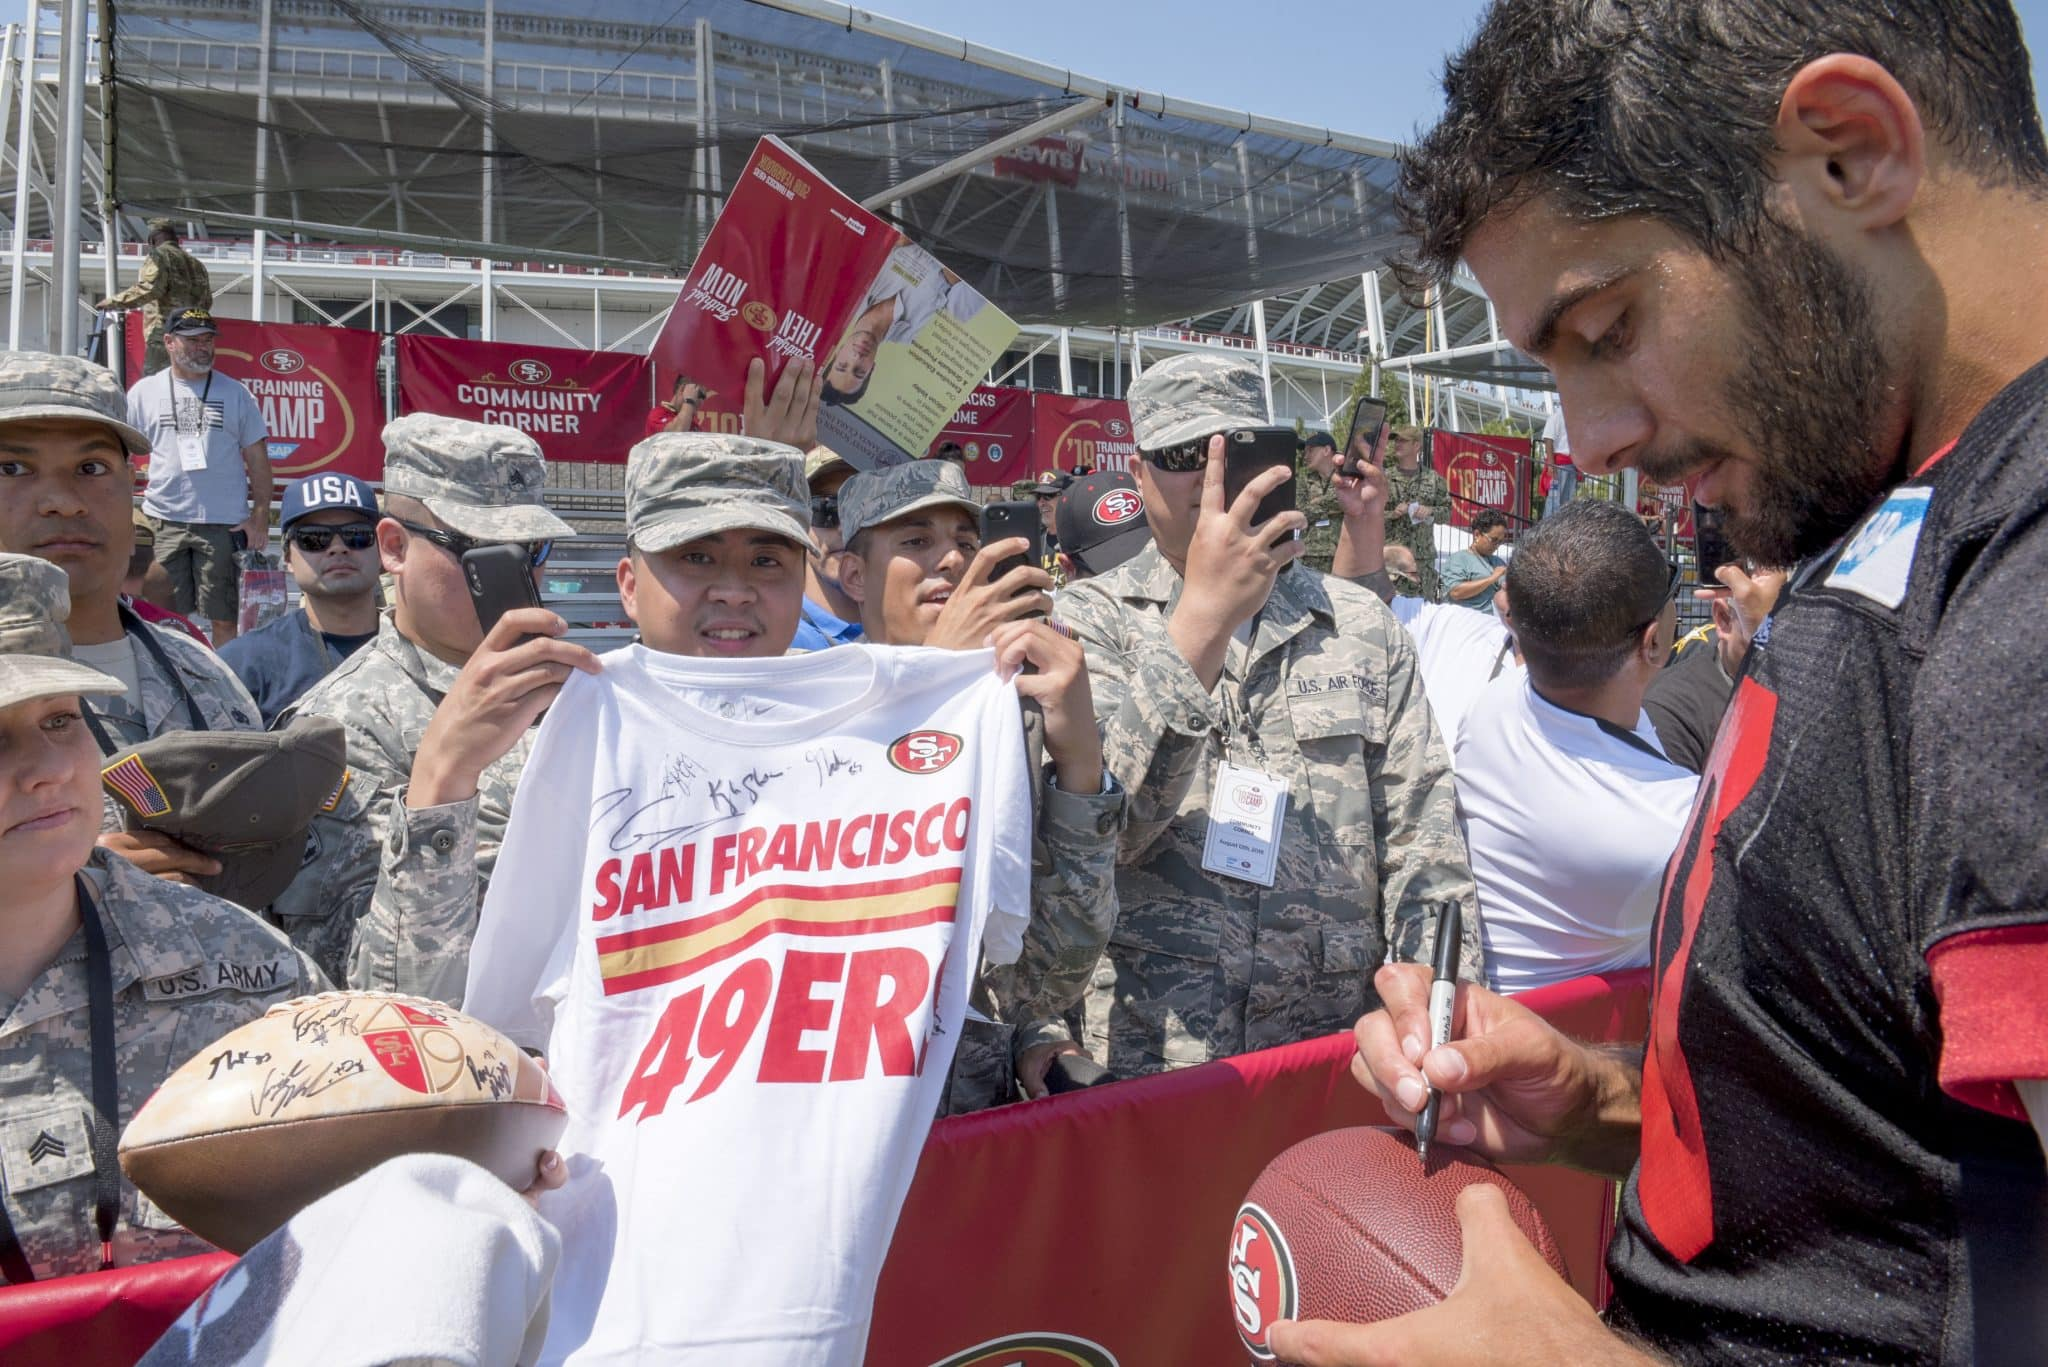 Jimmy Garoppolo, a 49ers quarterback, signs a football for a fan at the SAP Performance Facility, Santa Clara, Calif., Aug. 12, 2018. The 49ers organization invited military members from the local area to observe their training camp during a military appreciation day. (U.S. Air Force photo by Lan Kim)